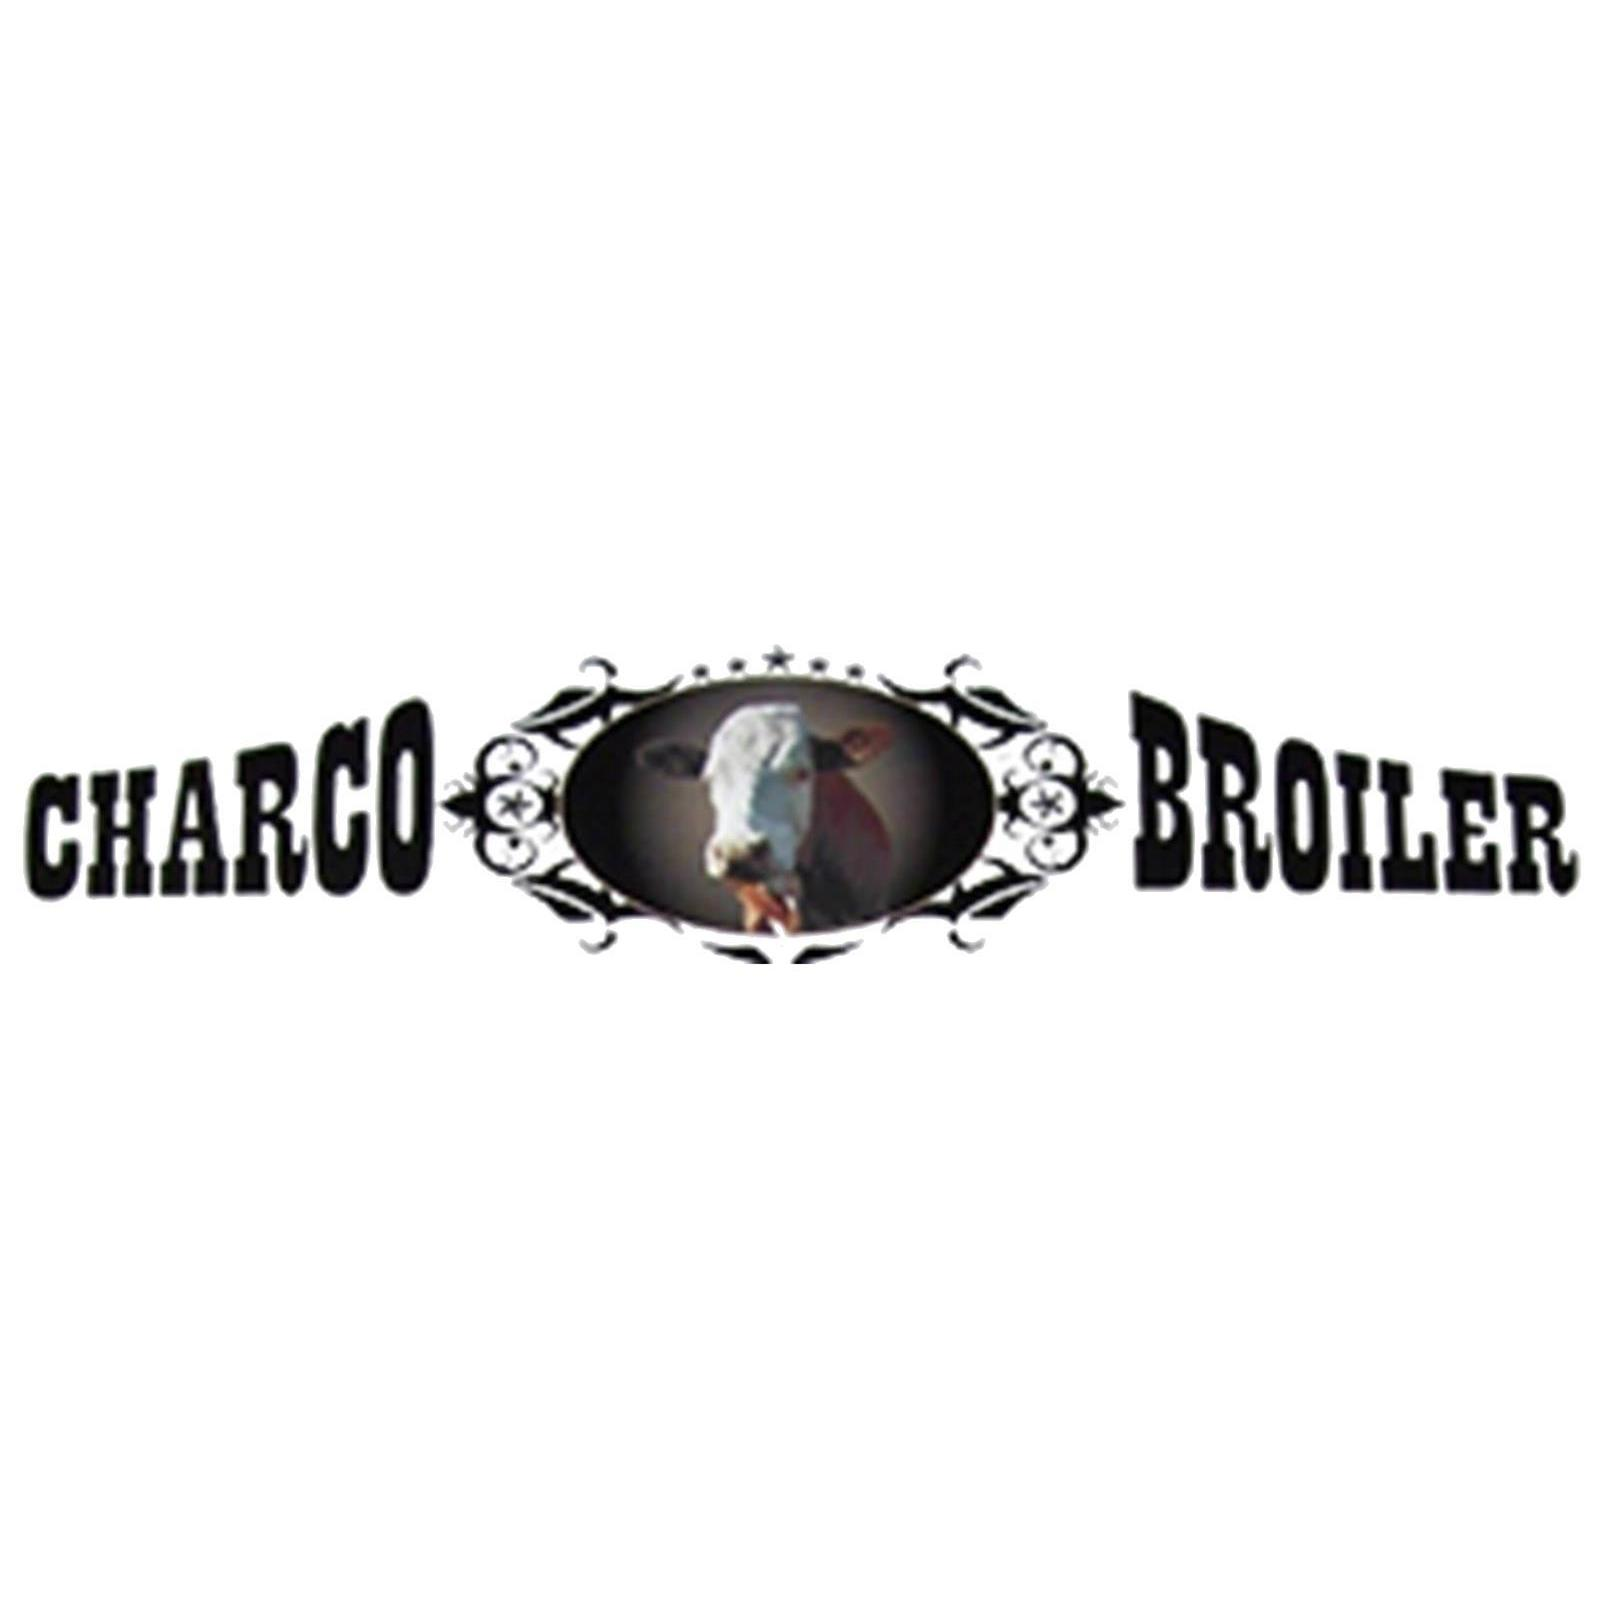 Charco Broiler Steak House